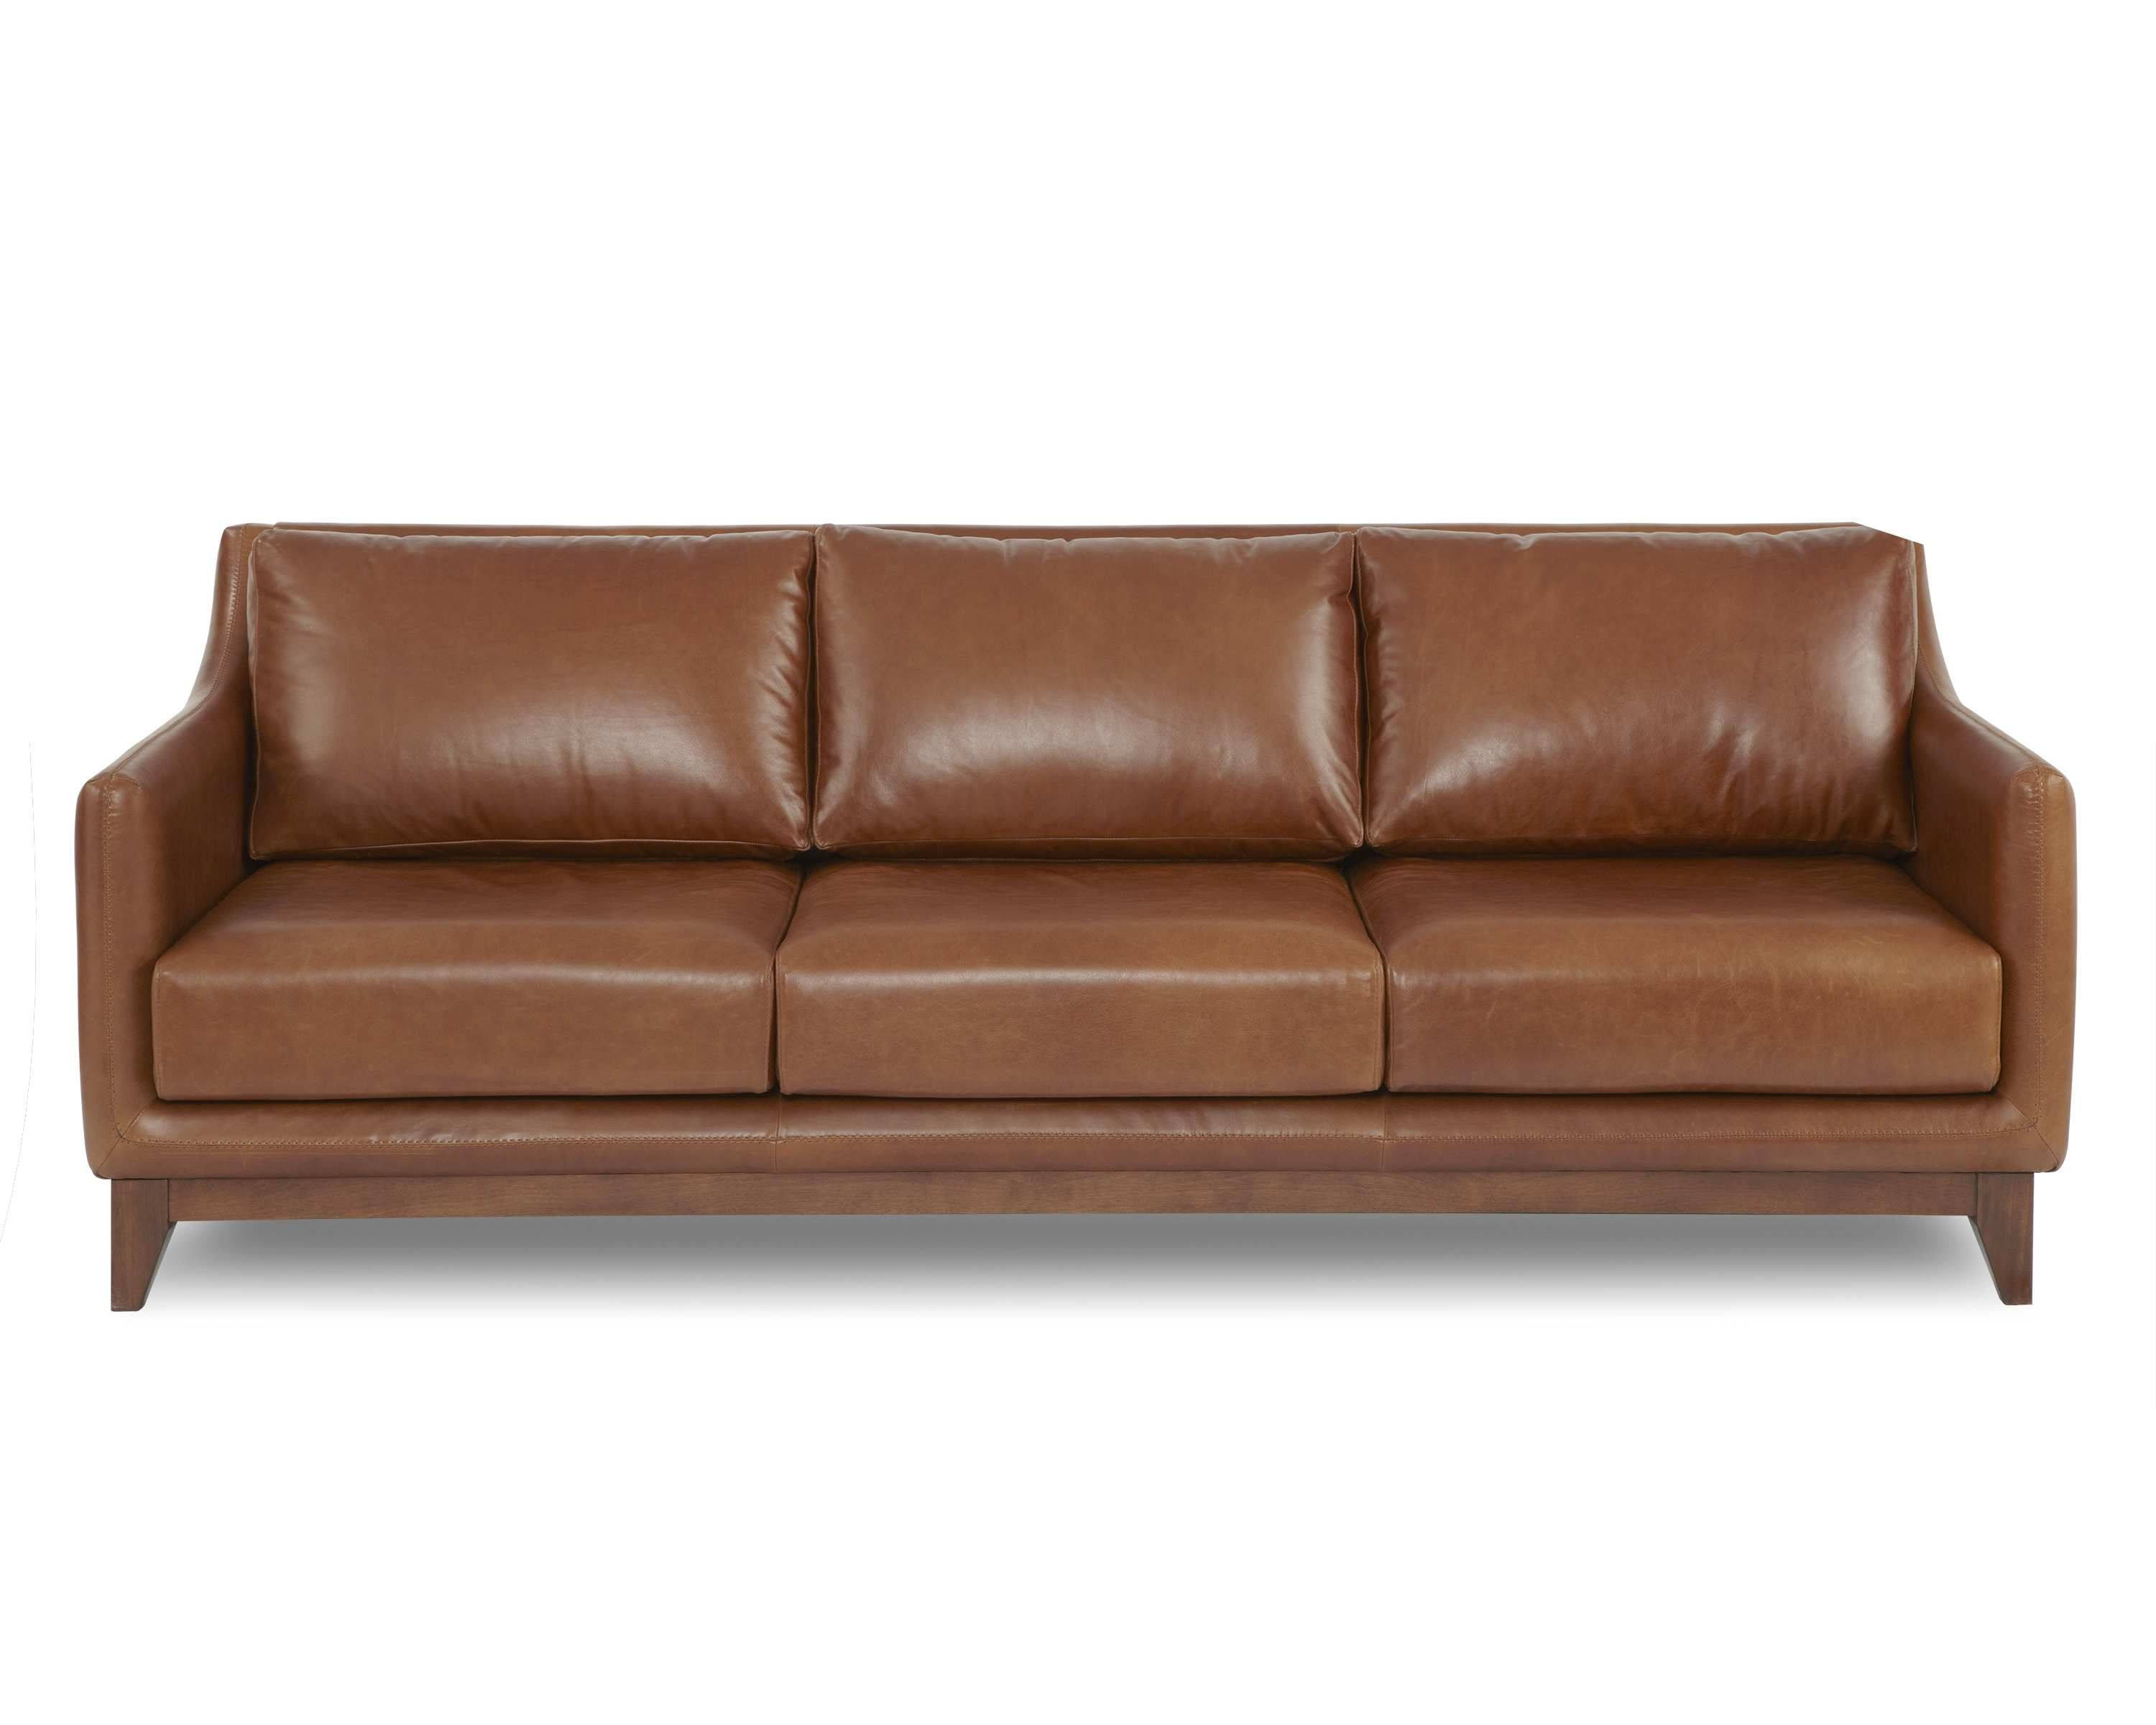 Gable Sofa Based In California Since